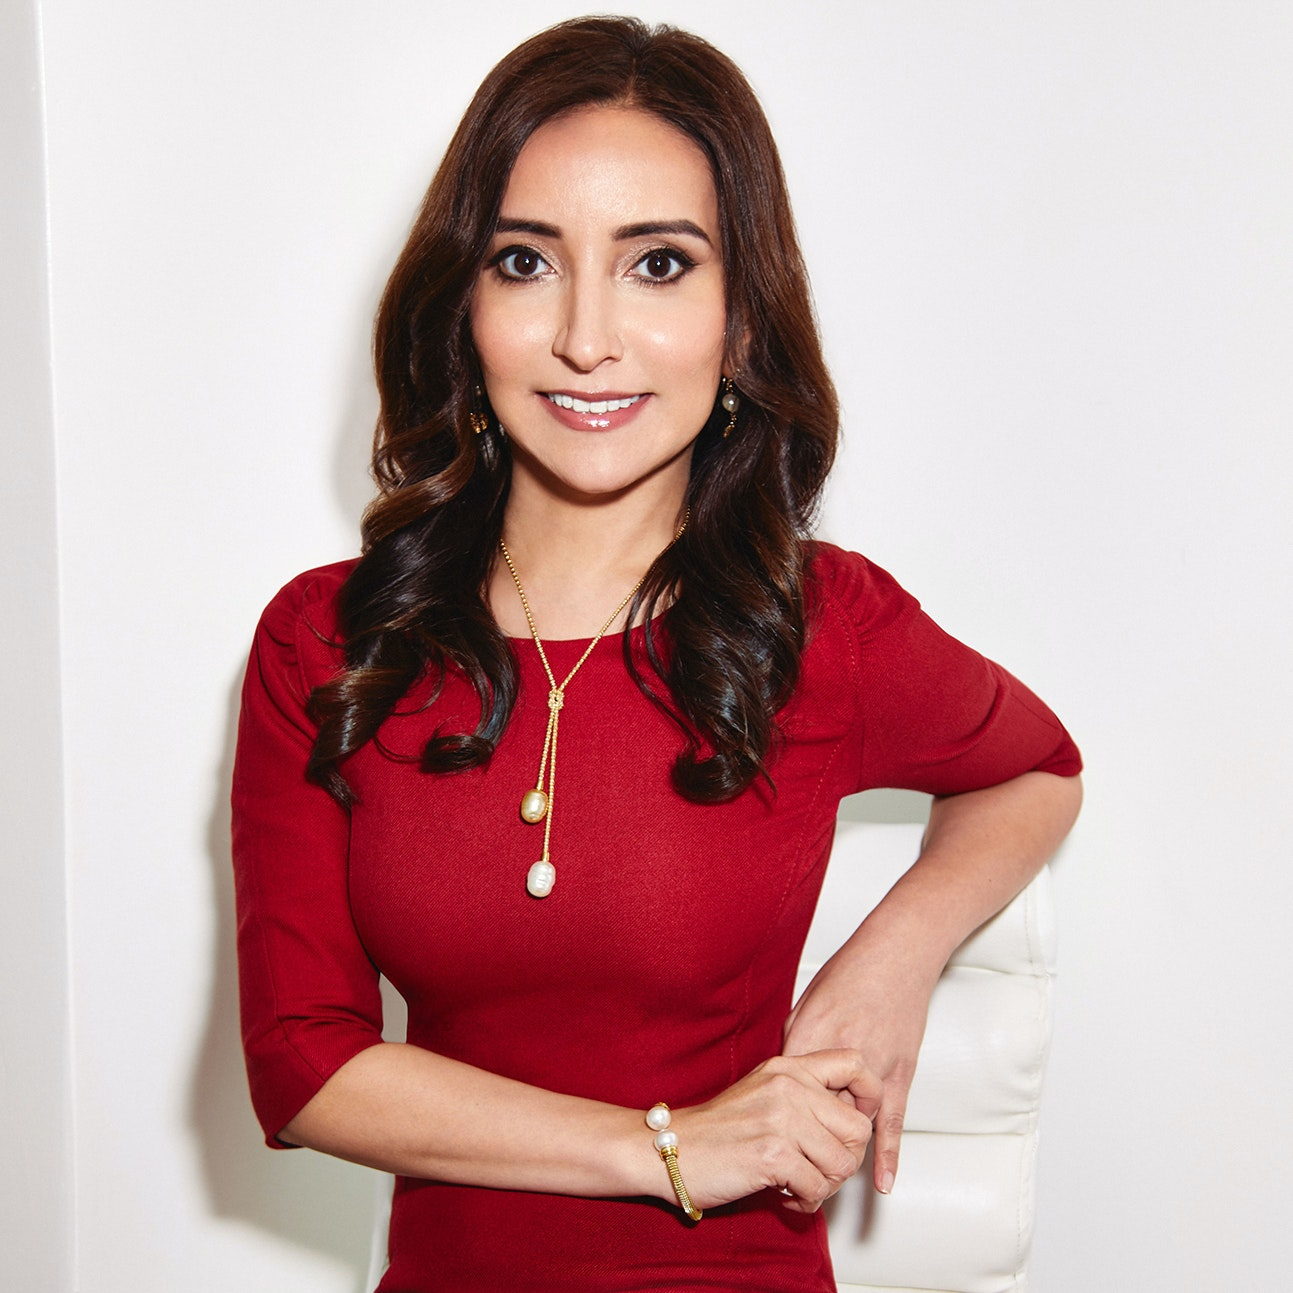 Her Top 11: Anand Medical Spa Founder Dr. Sunanda Chugh